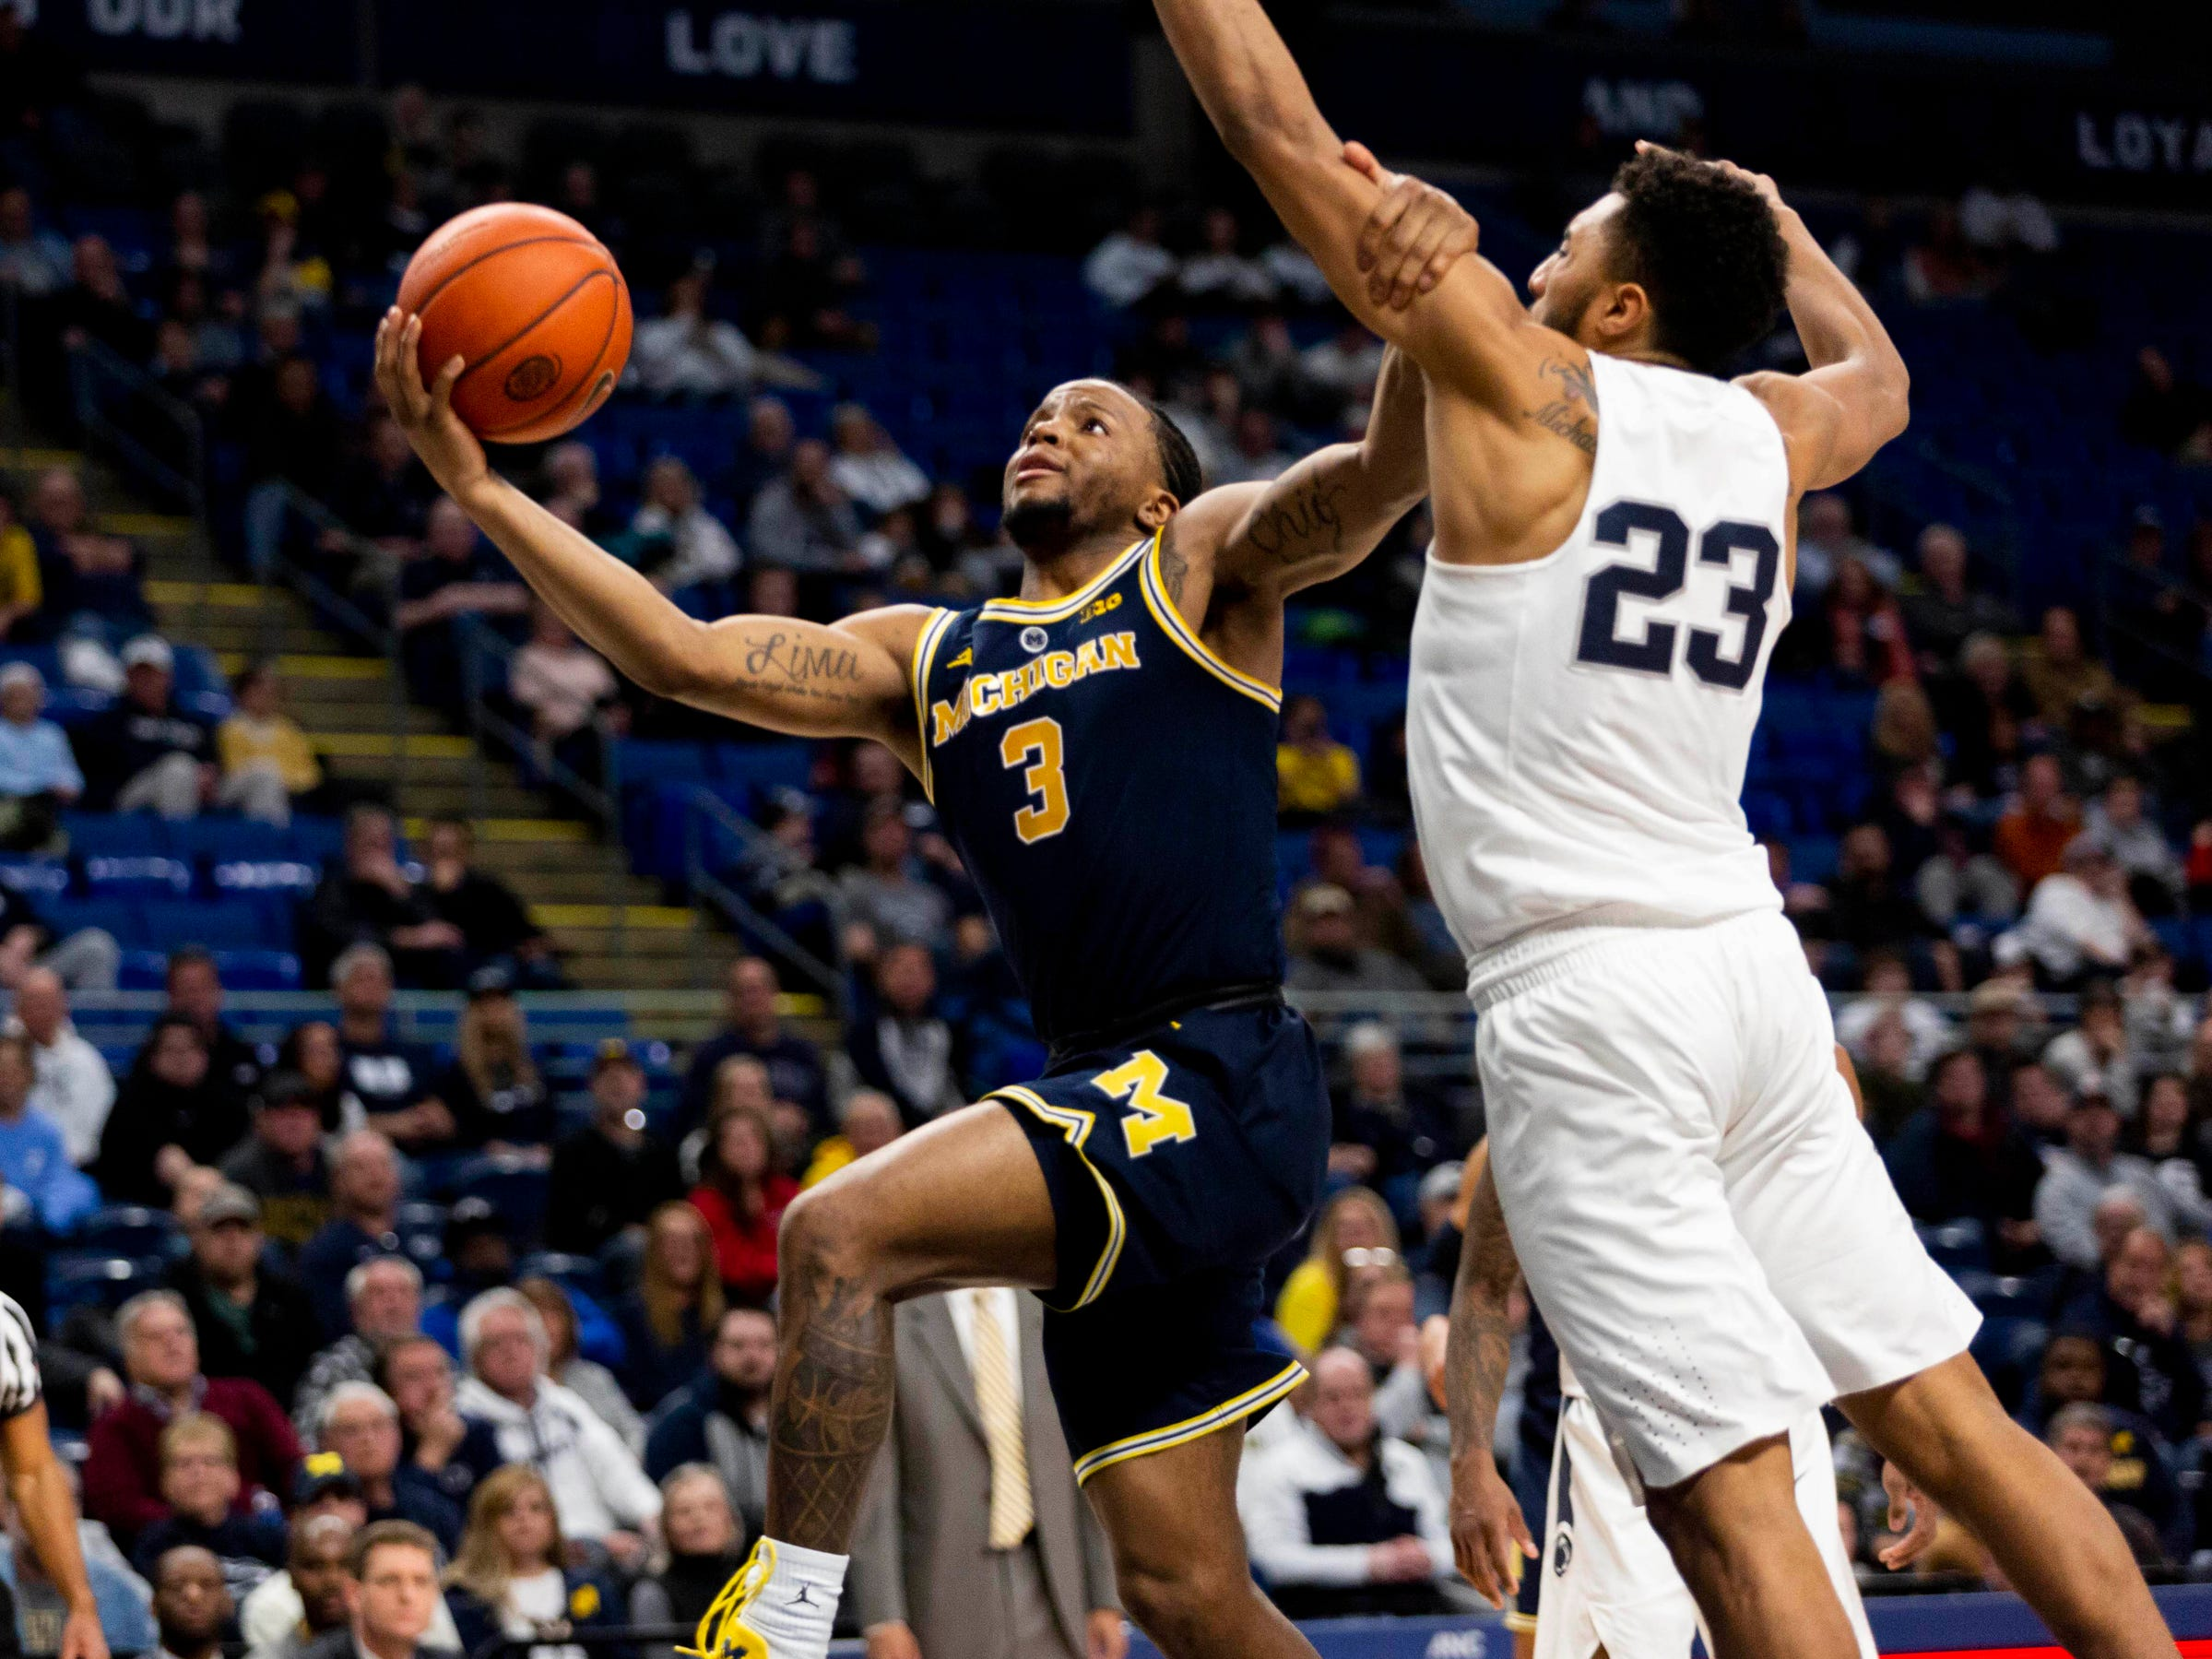 Michigan guard Zavier Simpson shoots past Penn State guard Josh Reaves during the second half Tuesday, Feb. 12, 2019, in State College, Pa.